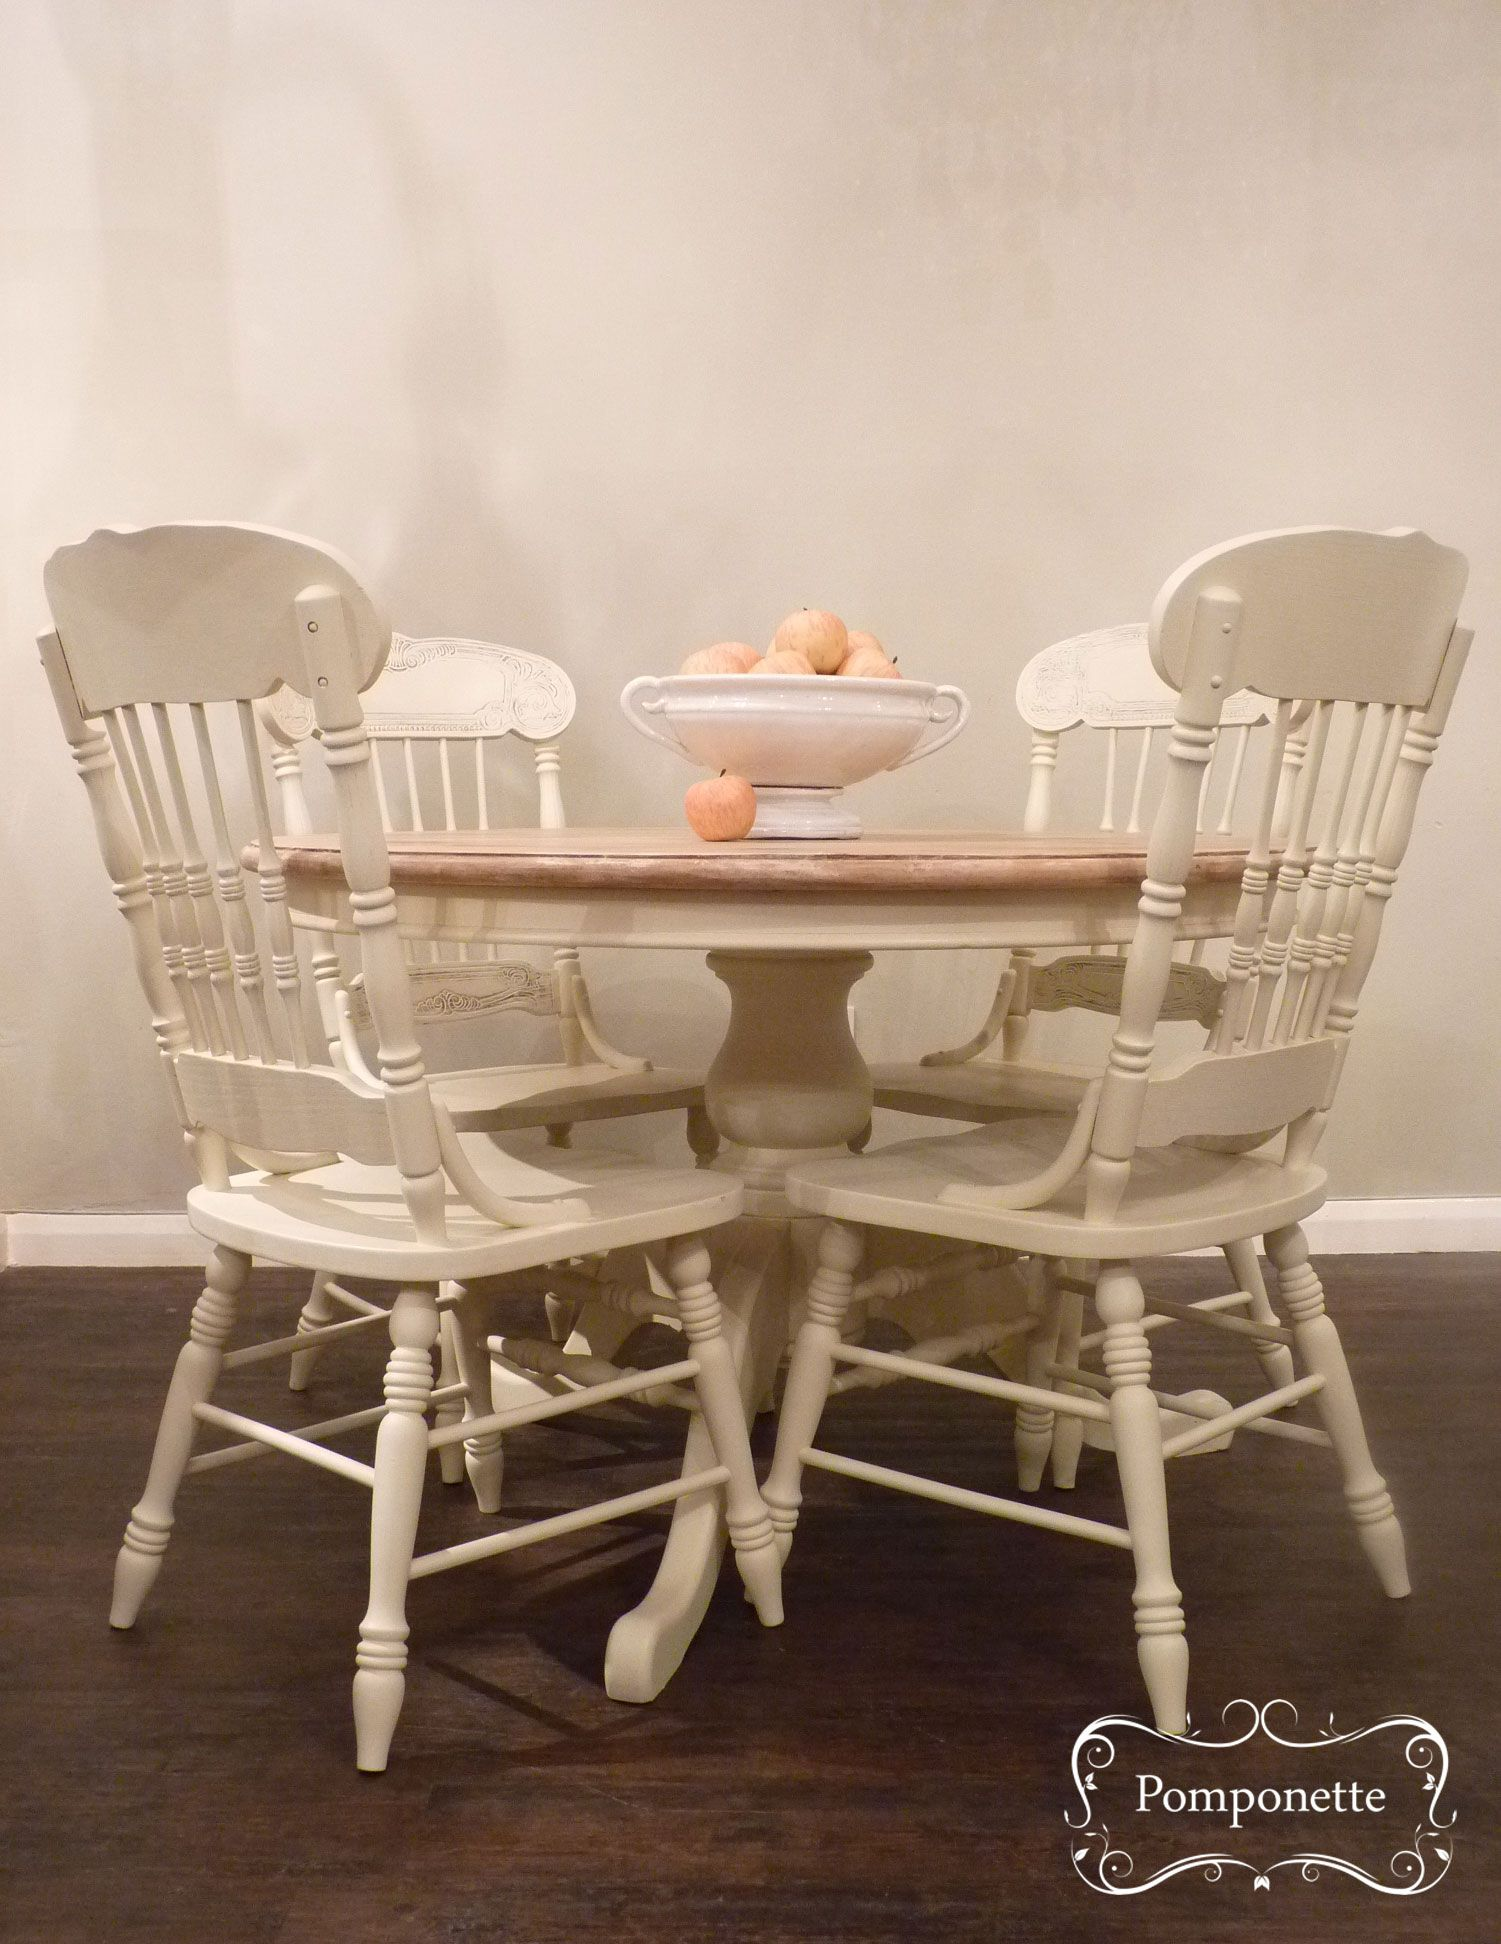 Round Pedestal Dining Table Four Chairs Chalk PaintTM By Annie Sloan Stockists Trainers Vintage Painted Furniture For Sale At Pomponette Leicester